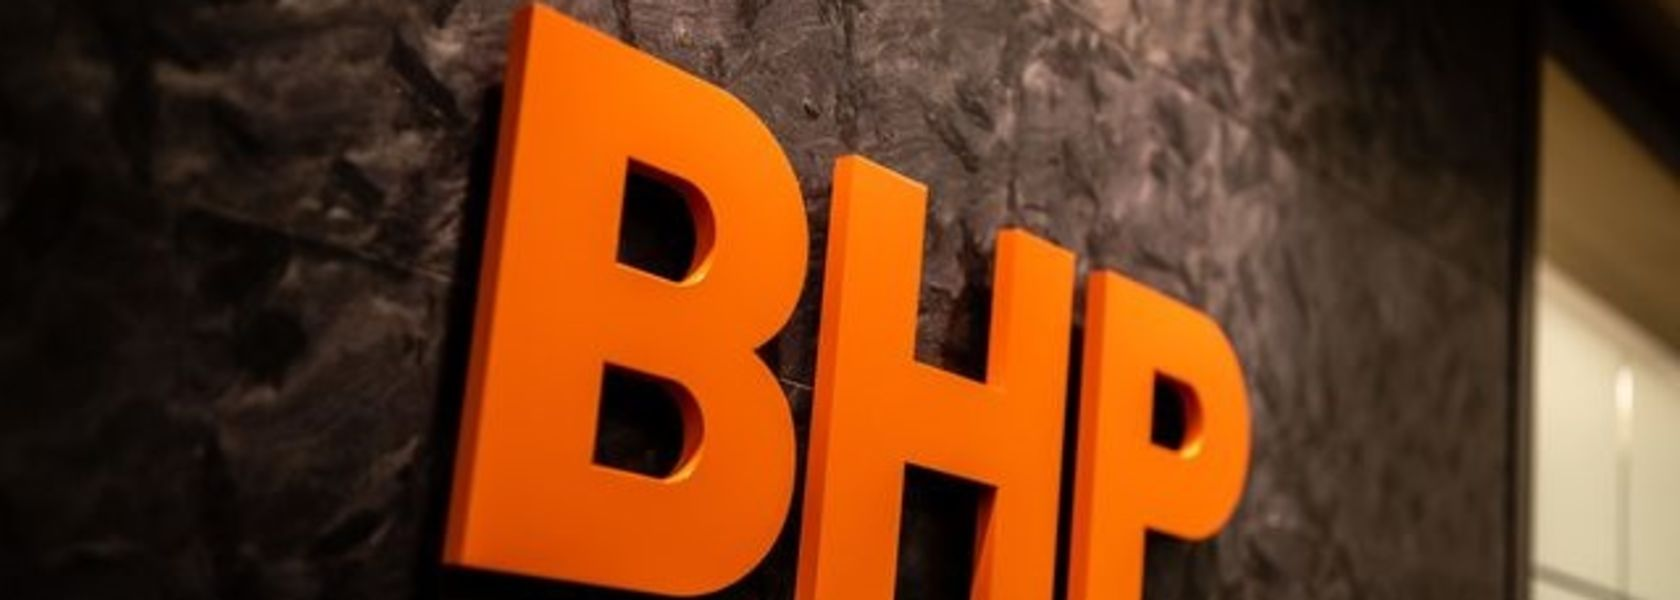 The BHP Board has announced to pay a final dividend of 55 US cents per share